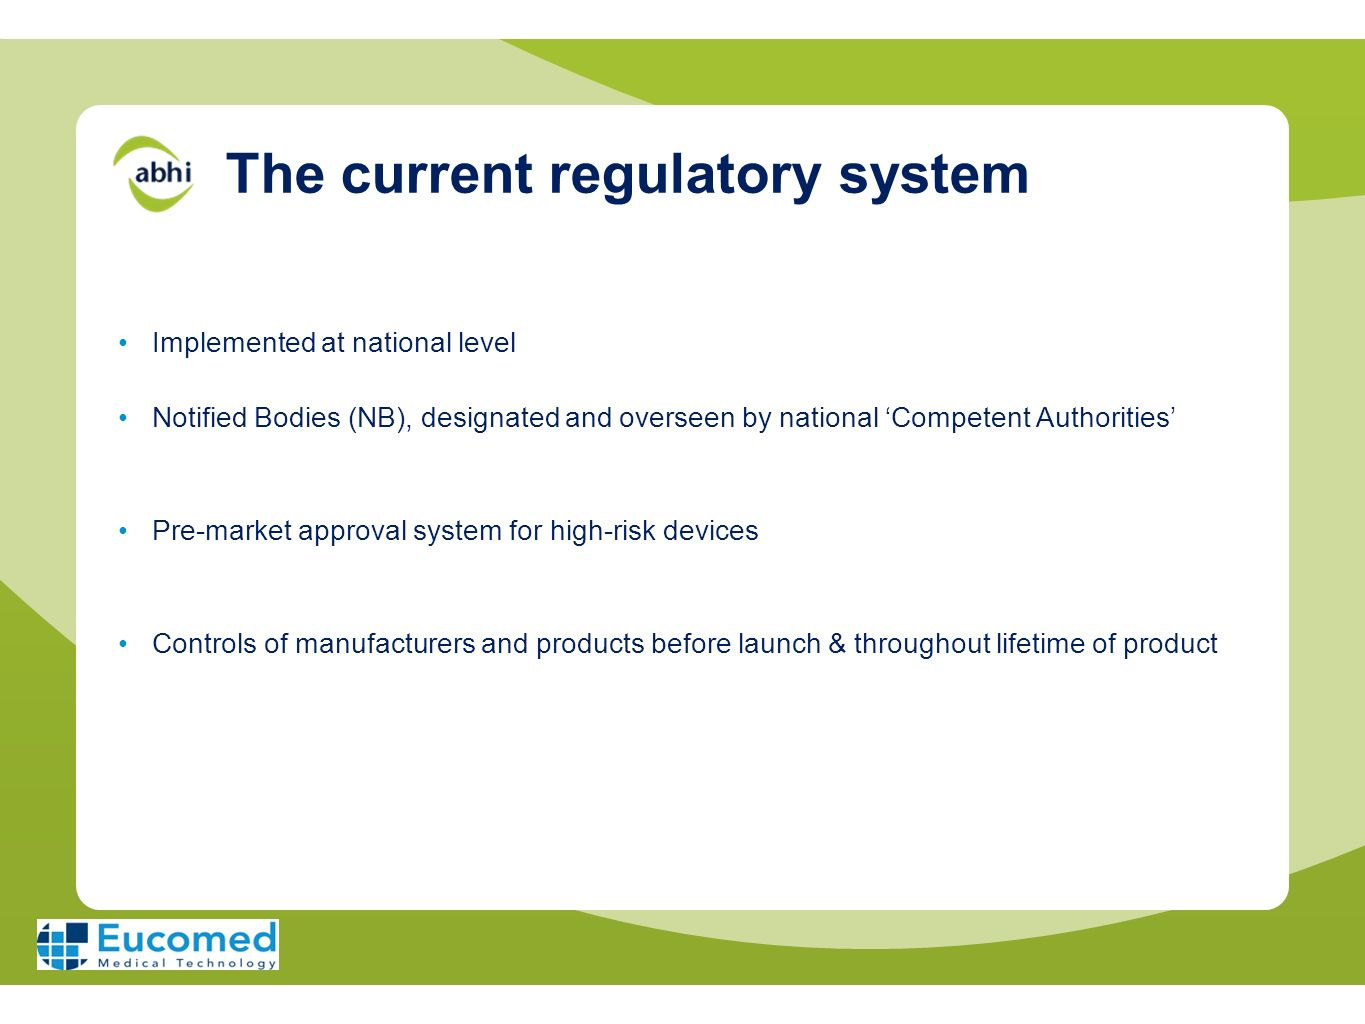 The current regulatory system